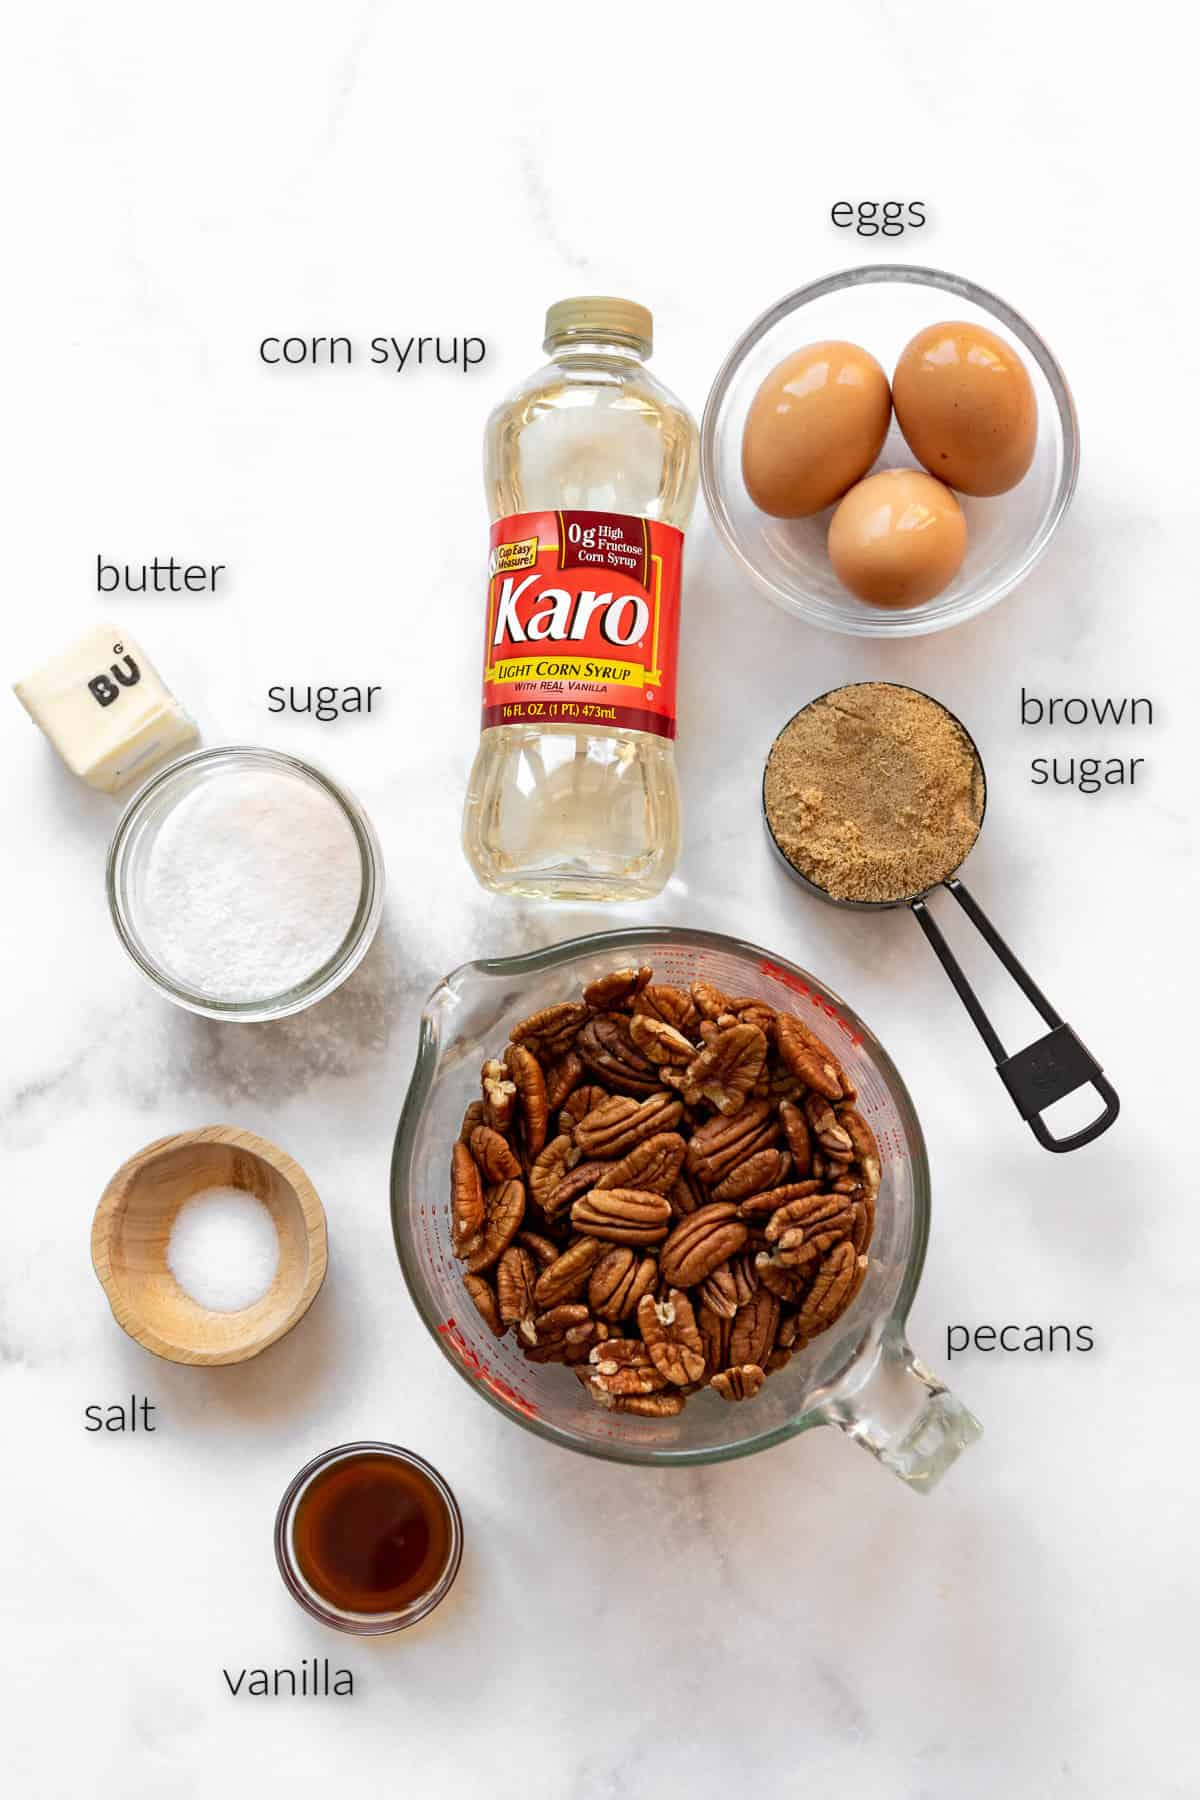 labeled ingredients for making a homemade pecan pie.